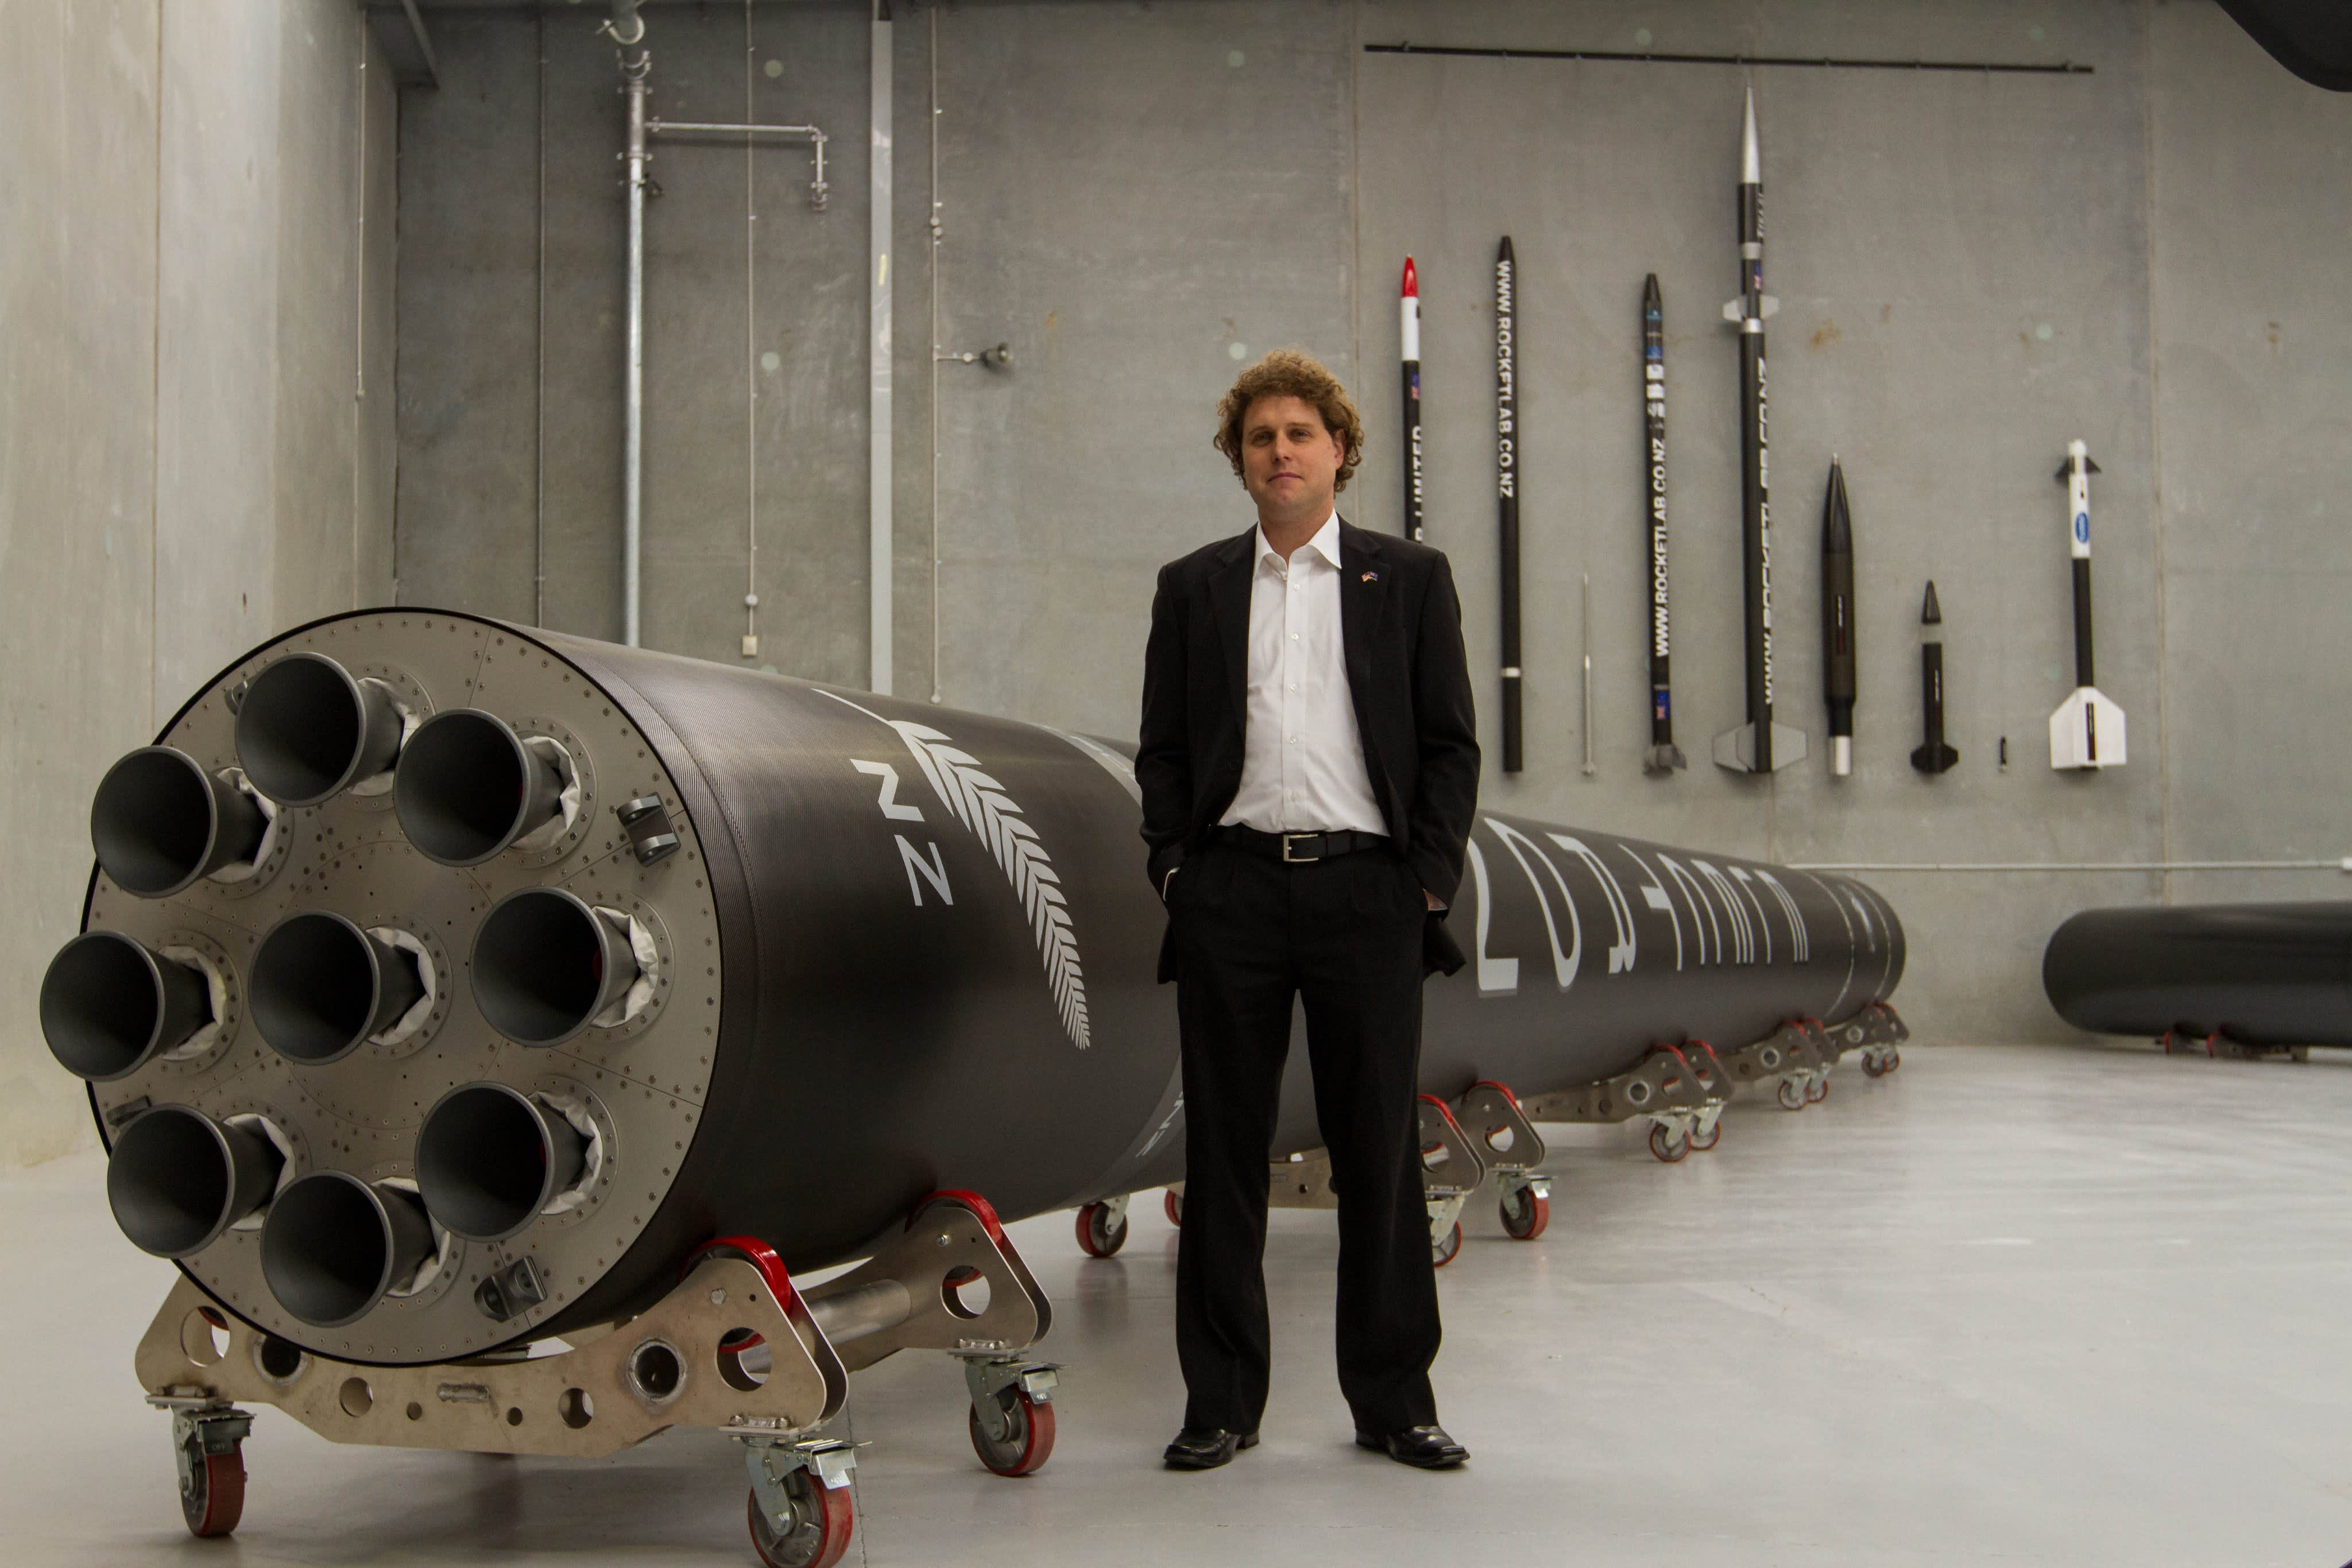 Small-launch chief Rocket Lab going public by way of a SPAC, with plans for greater Neutron rocket